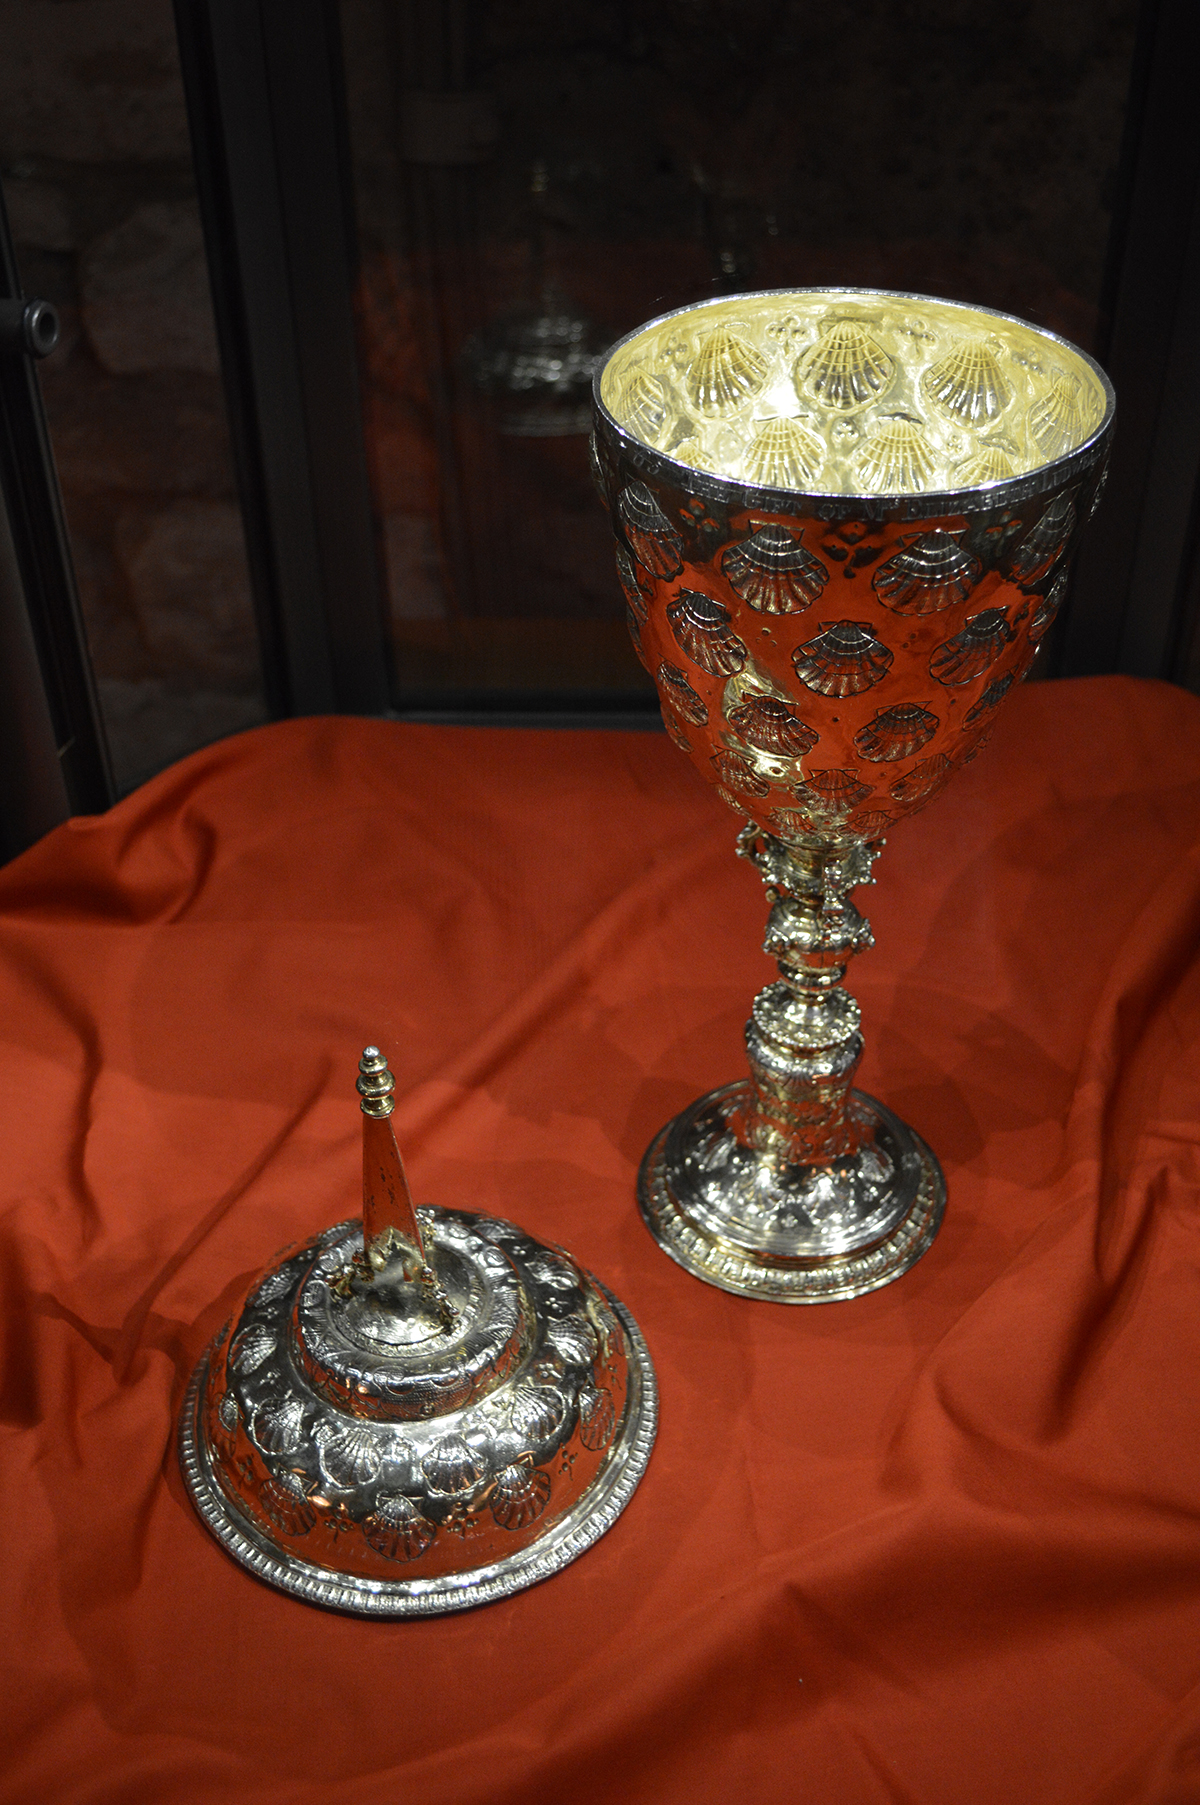 Steeple Cup on Display